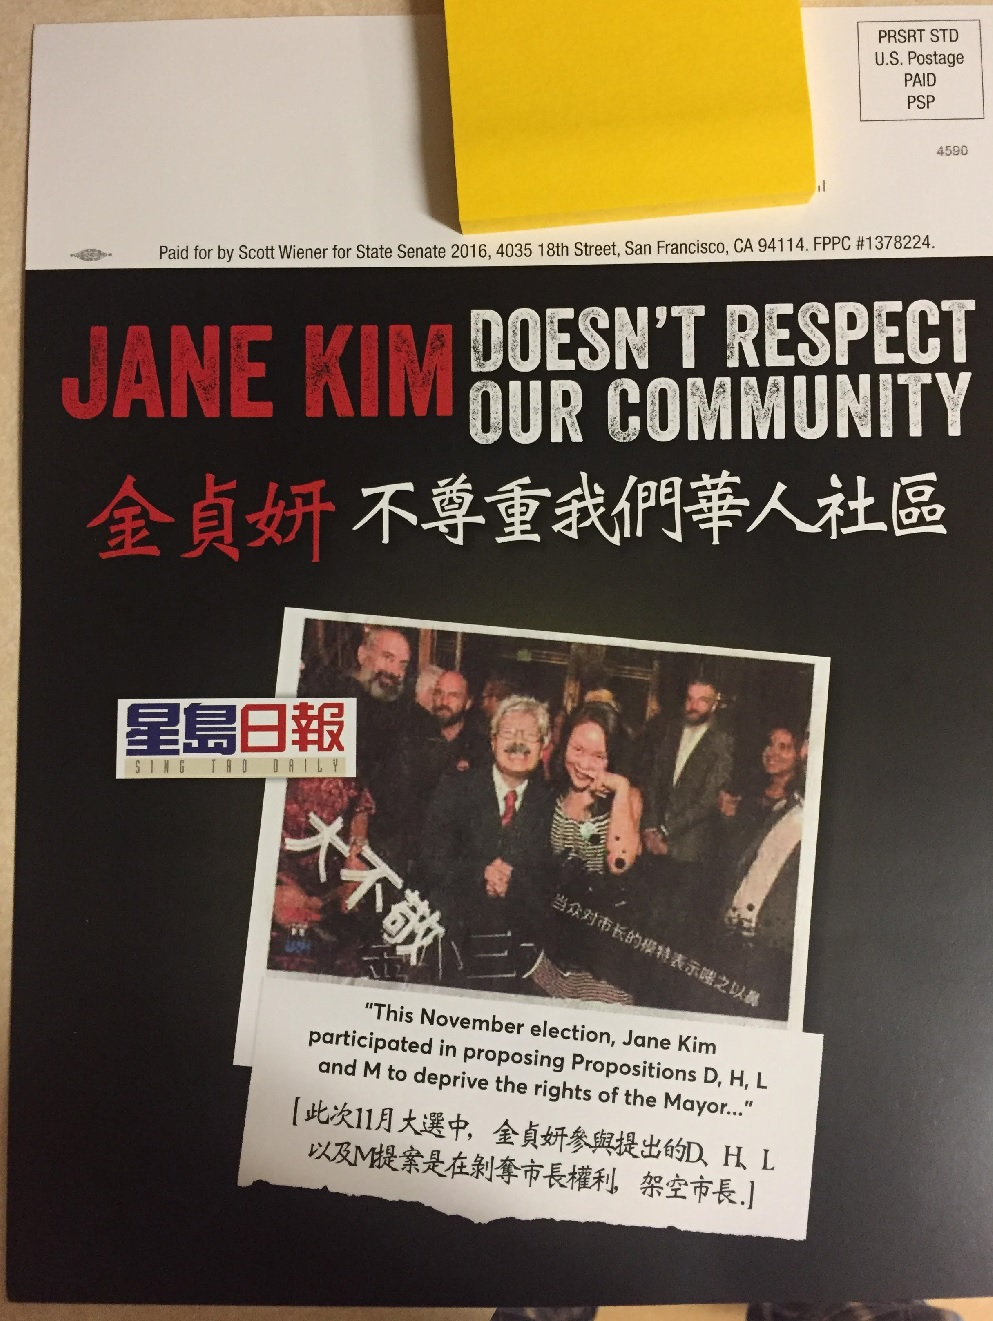 The Wiener campaign uses a photo that Sing Tao daily used -- upsetting the photographer who supports Jane Kim. Original photo by Gooch